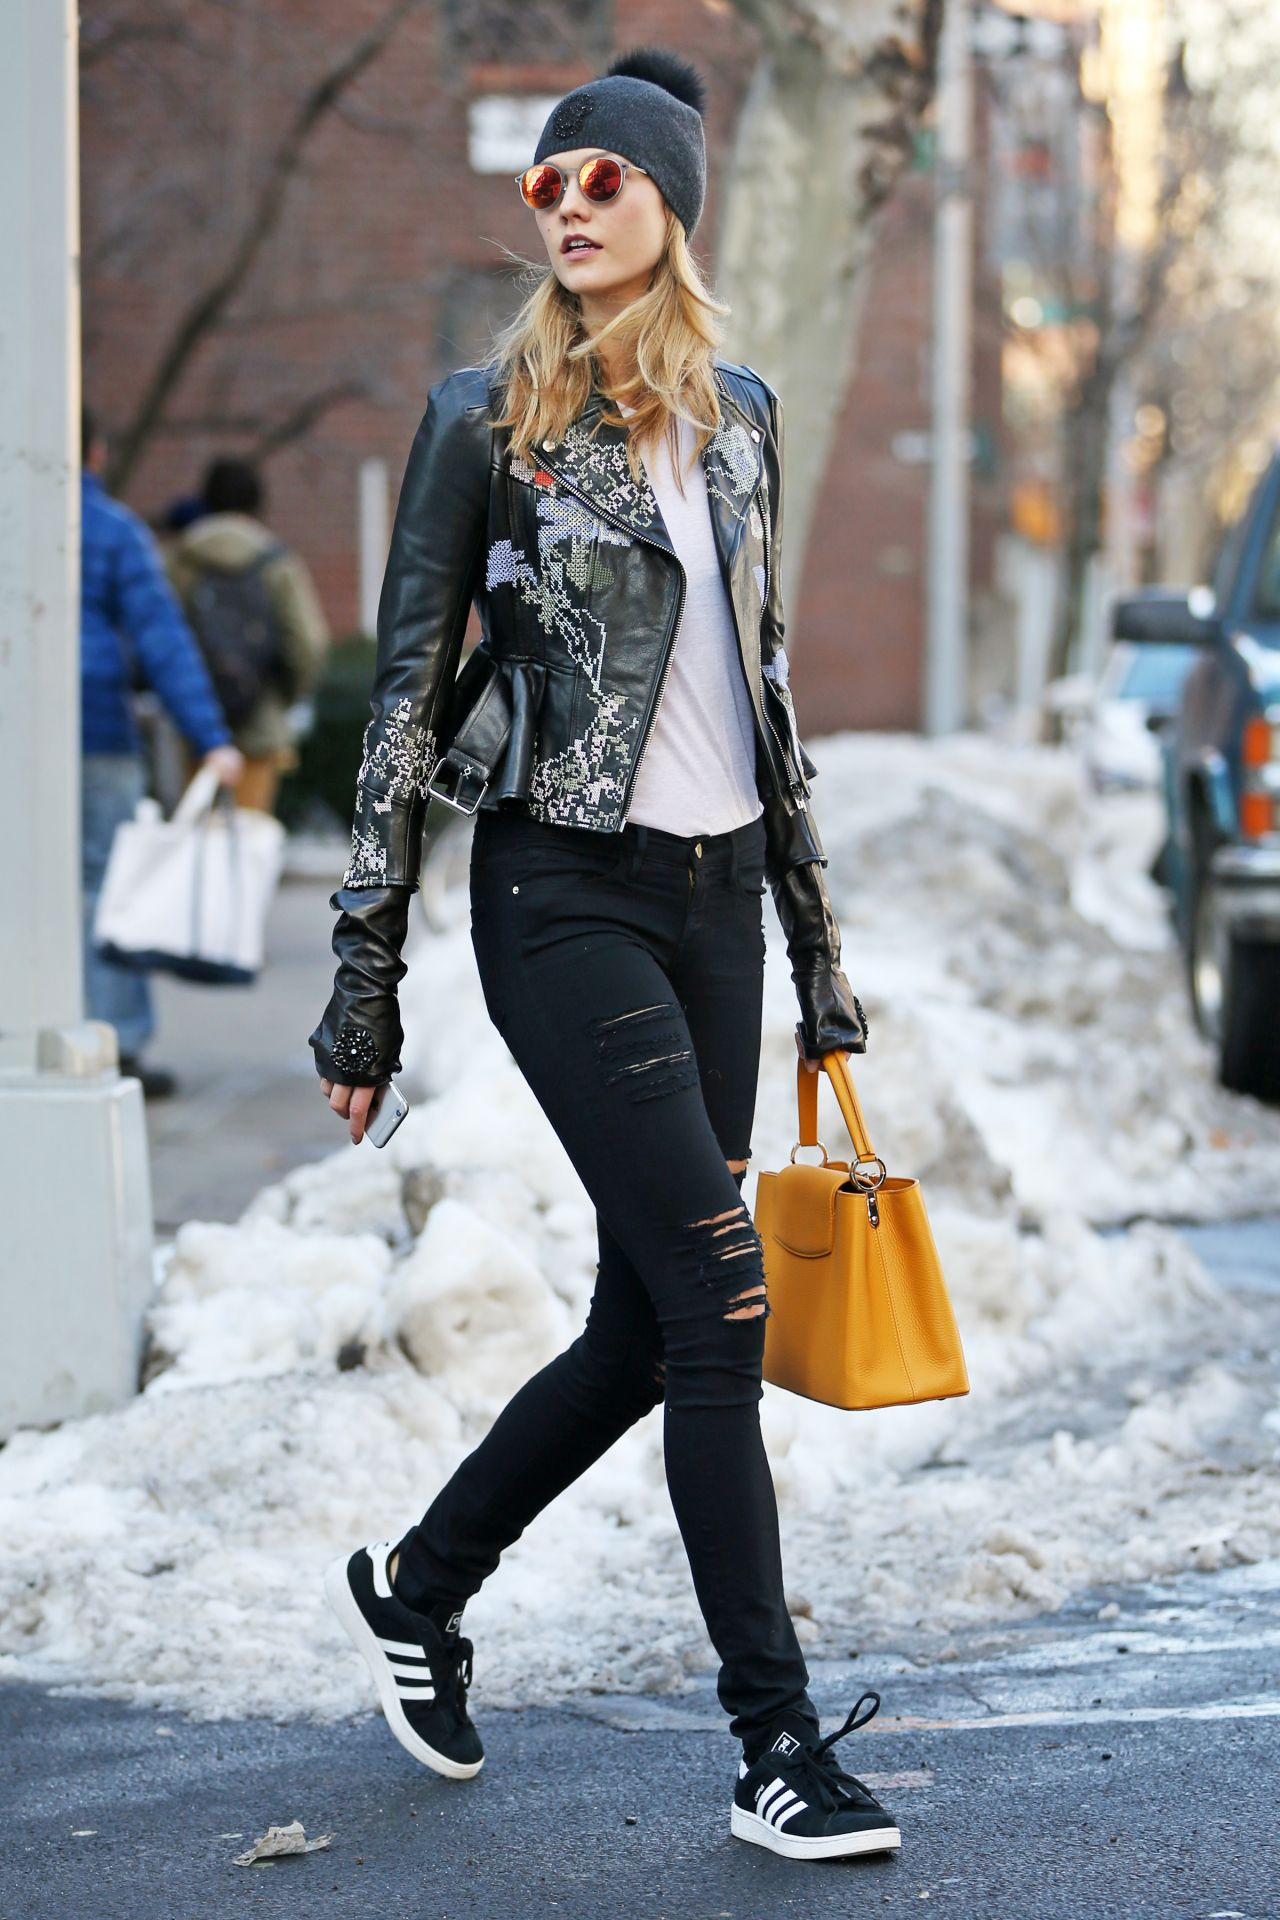 karlie-kloss-street-fashion-out-in-nyc-1